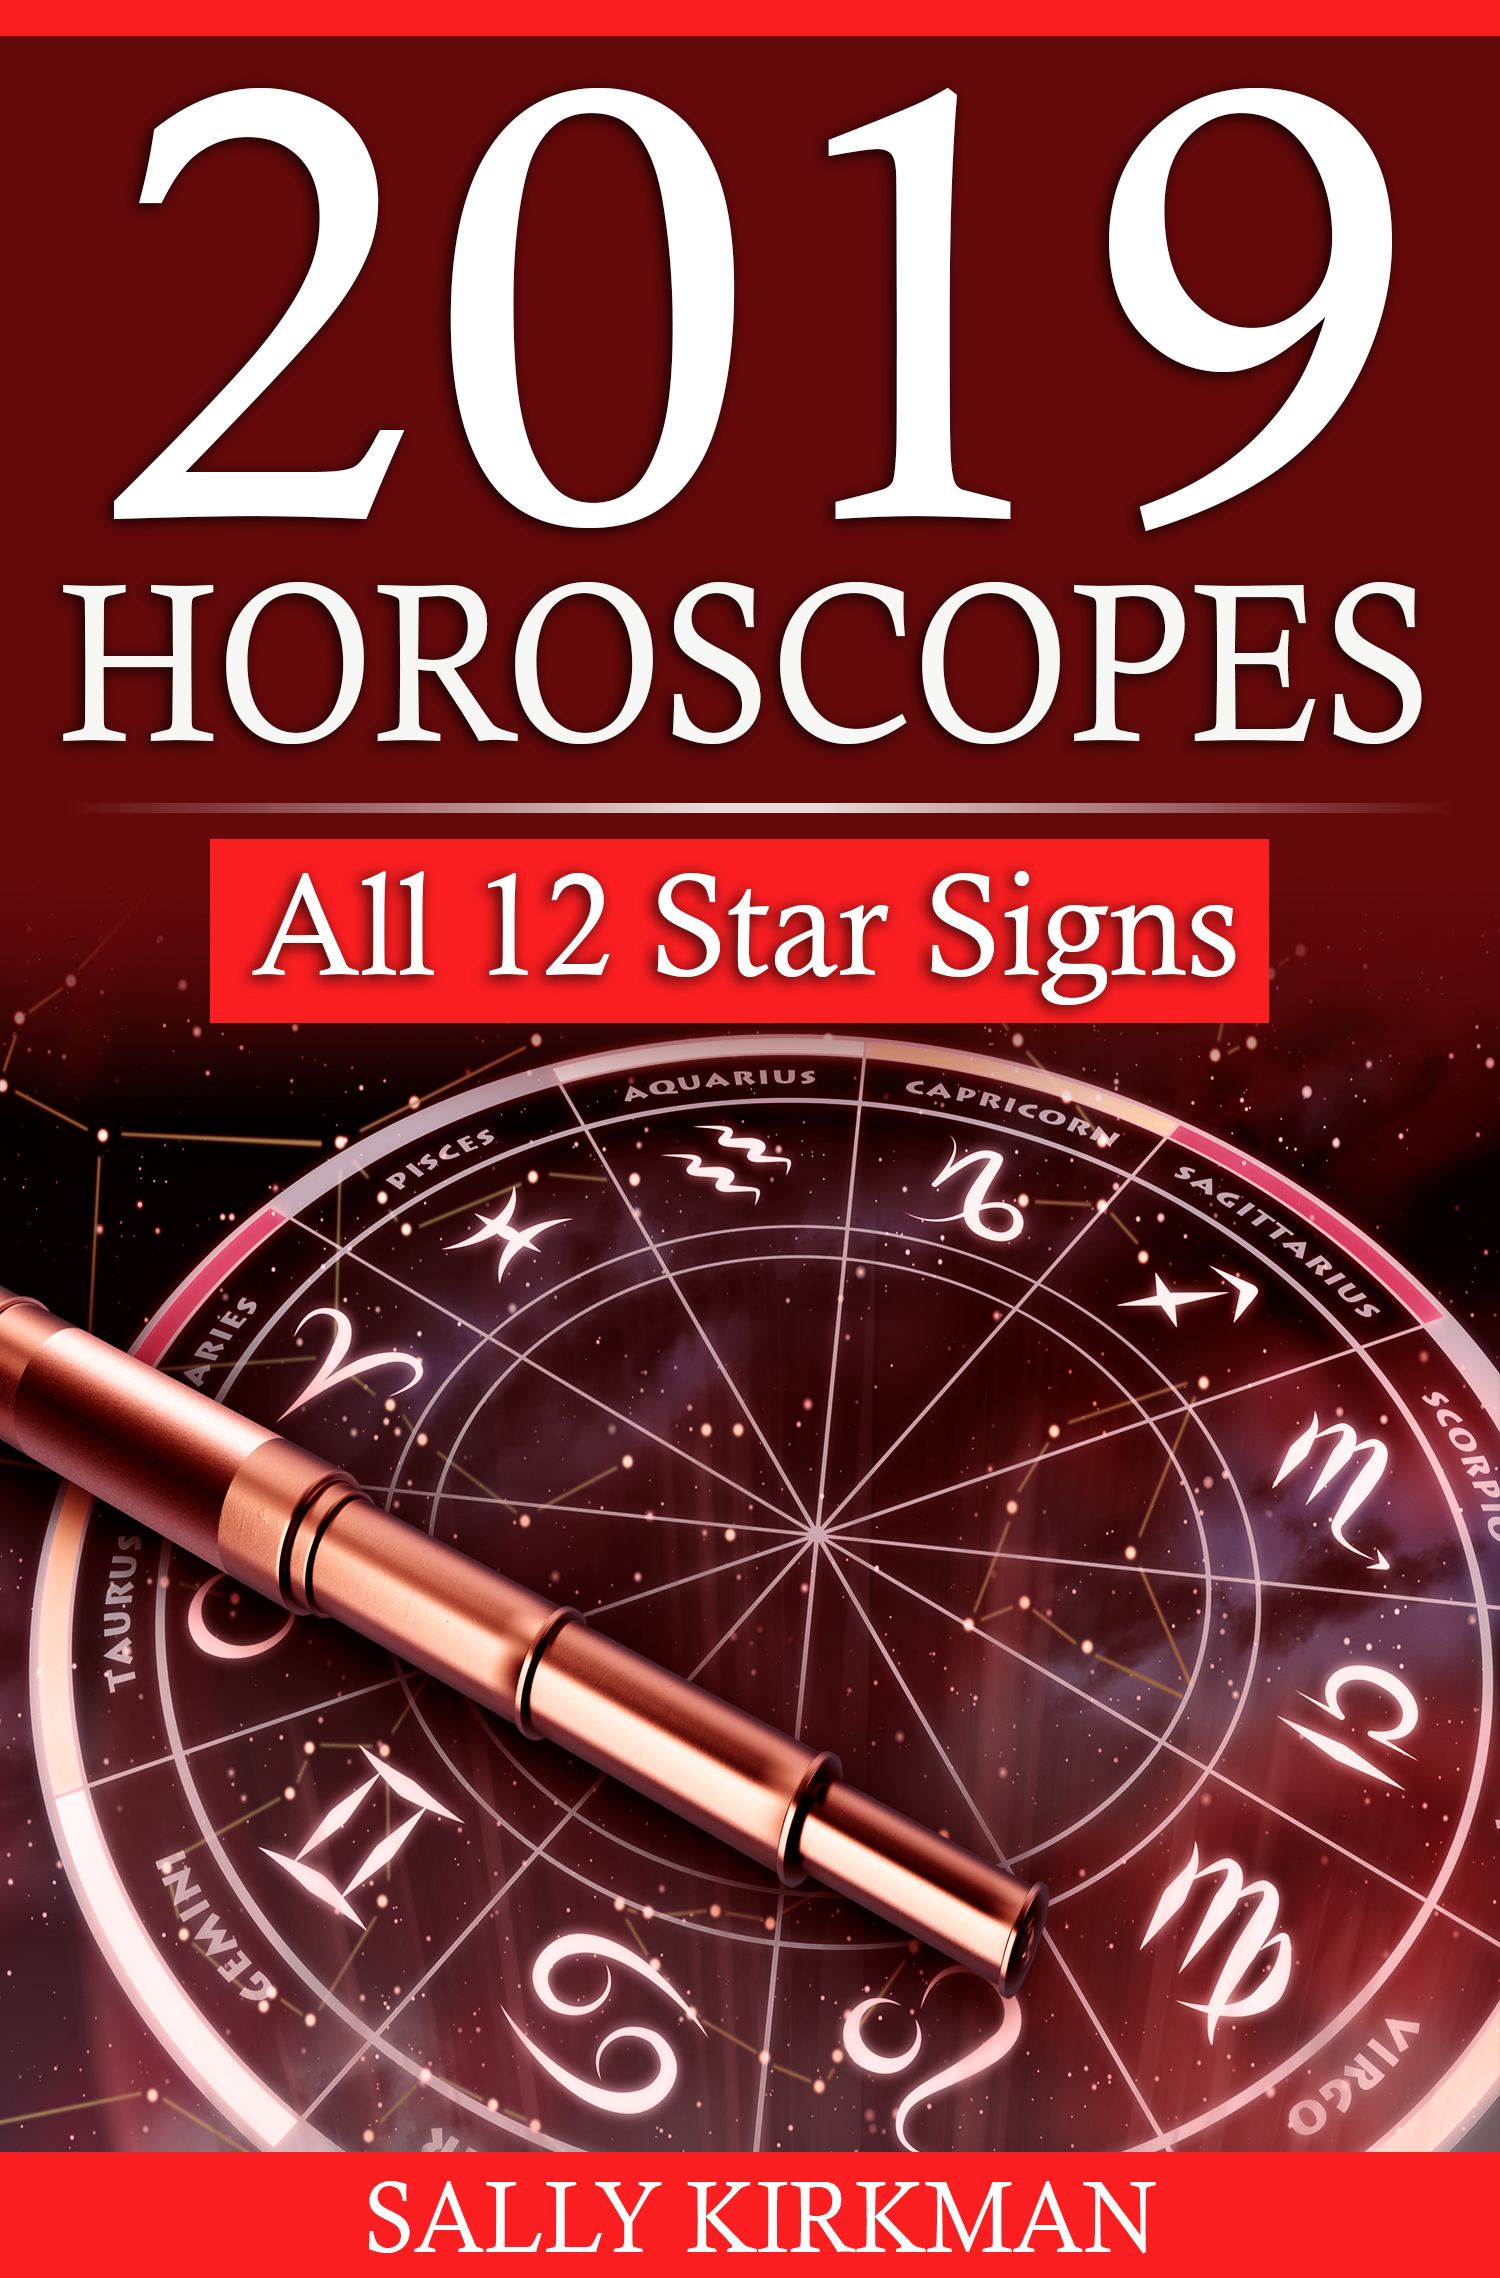 0236685a7 SPECIAL OFFER: You receive the 2019 Horoscopes eBook for free when you sign  up to the Weekly Horoscopes & Astrology Newsletter, saving you £7.99 ...